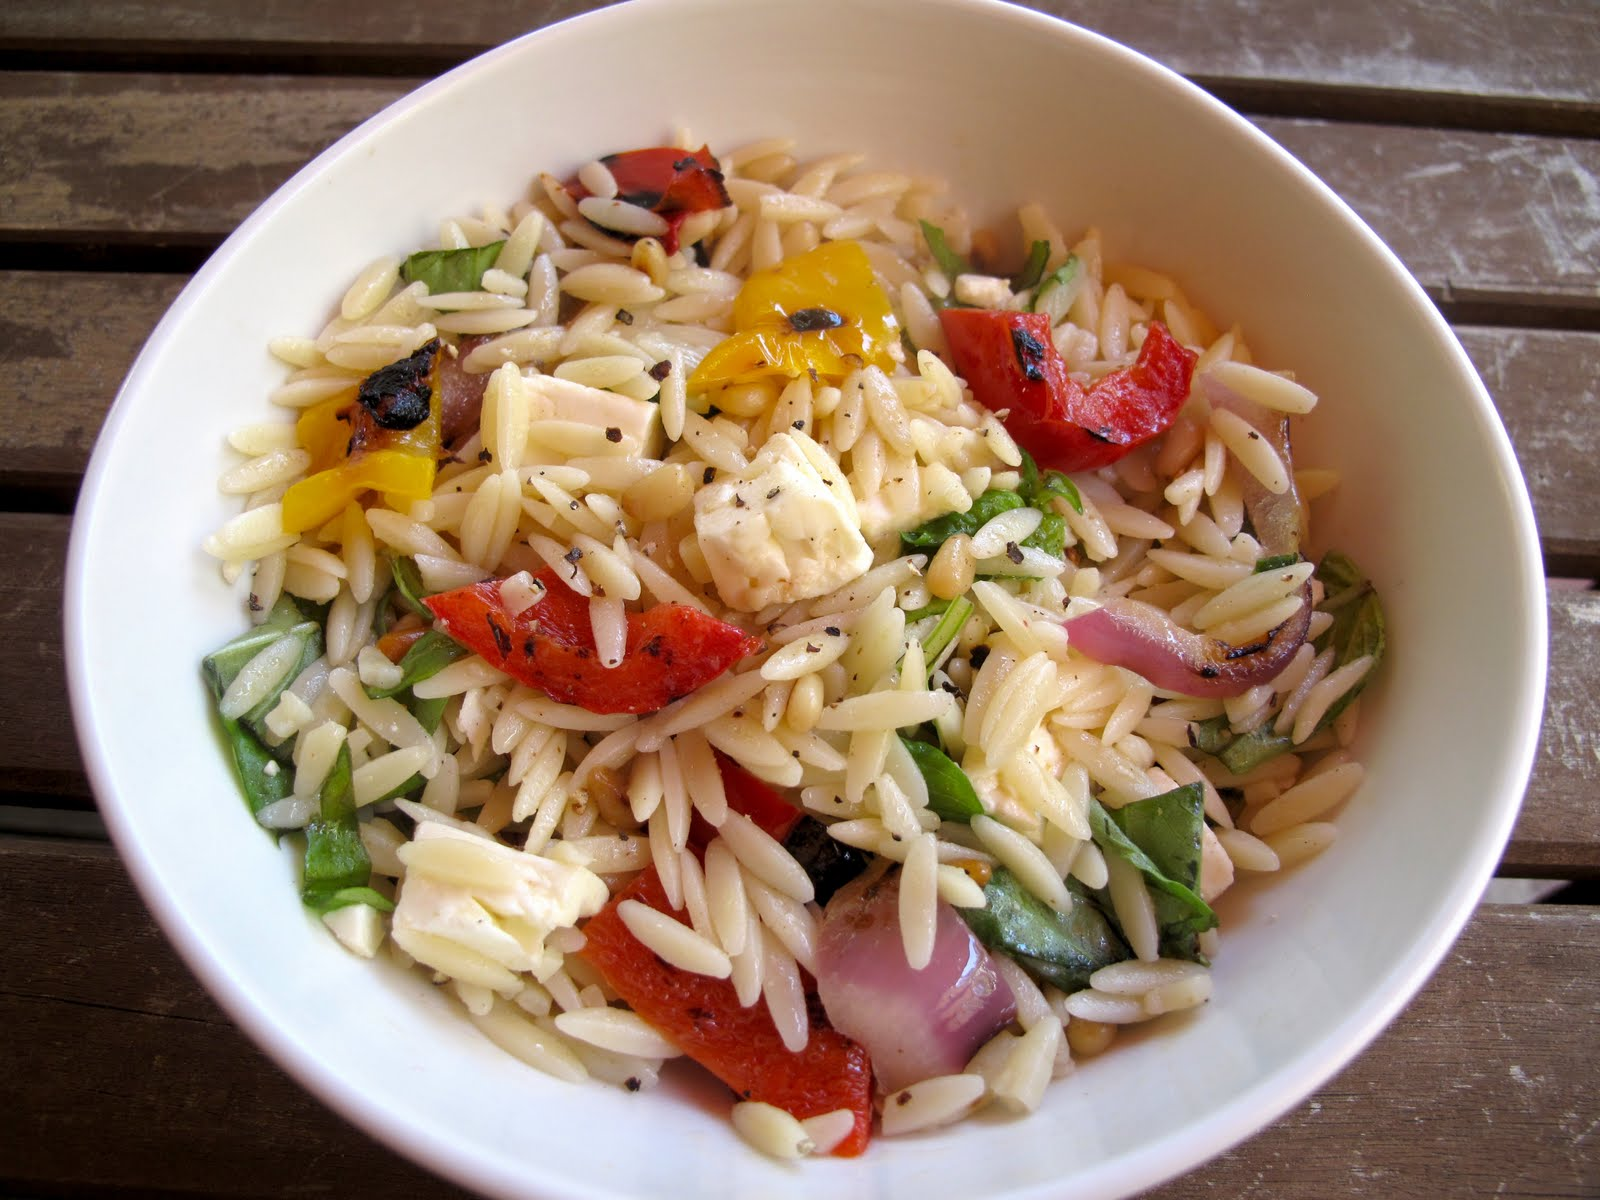 Orzo+Salad Greek Orzo Salad with Grilled Vegetables